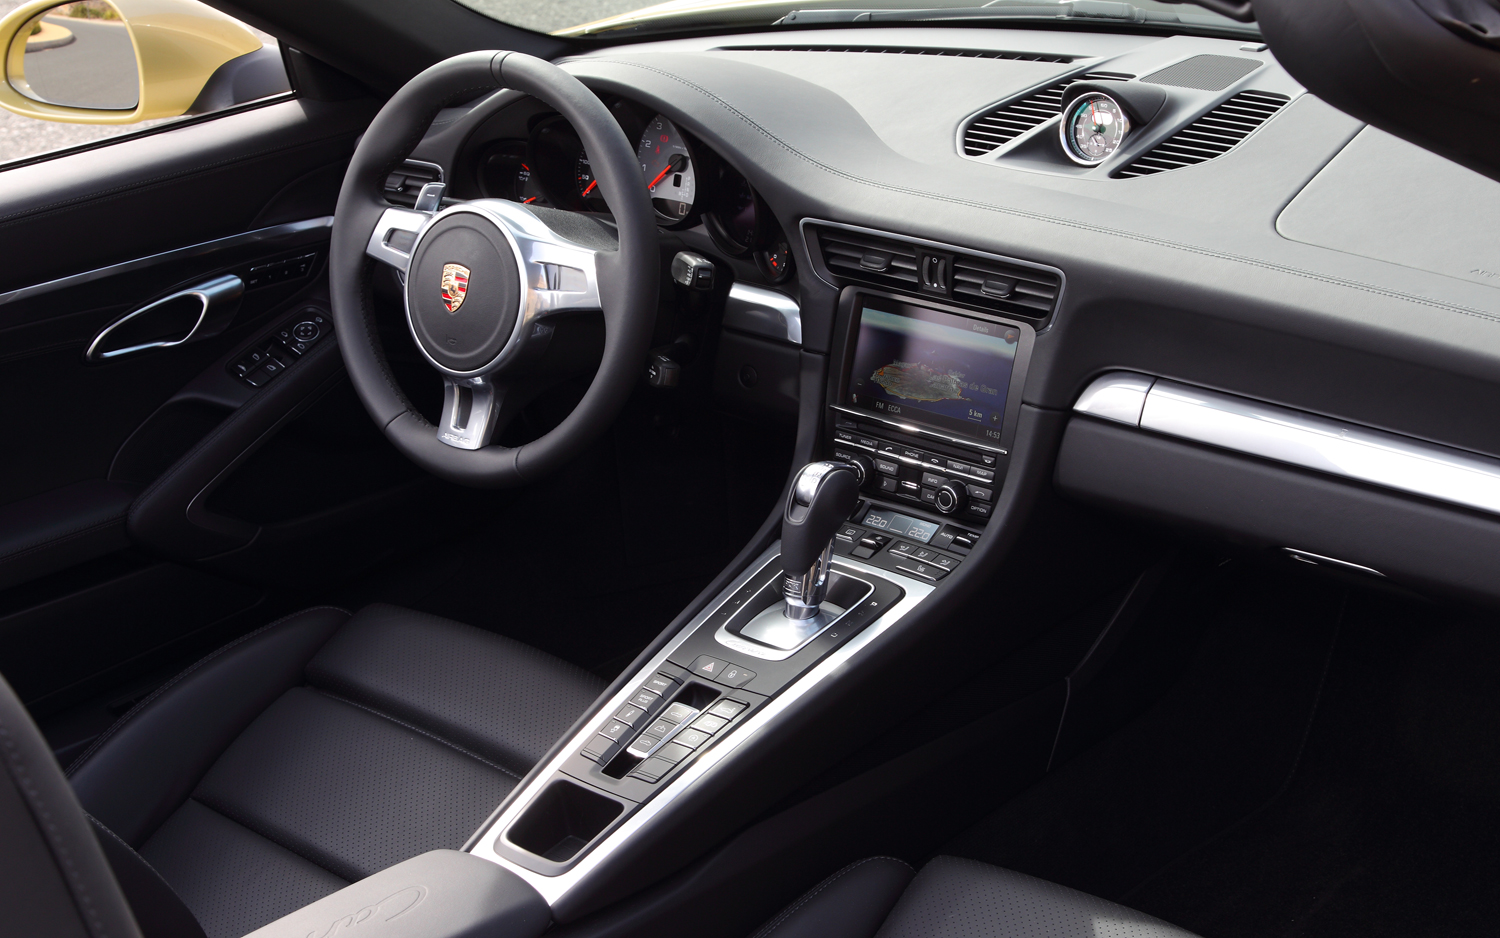 Porsche 911 2017 Interior Dashboard